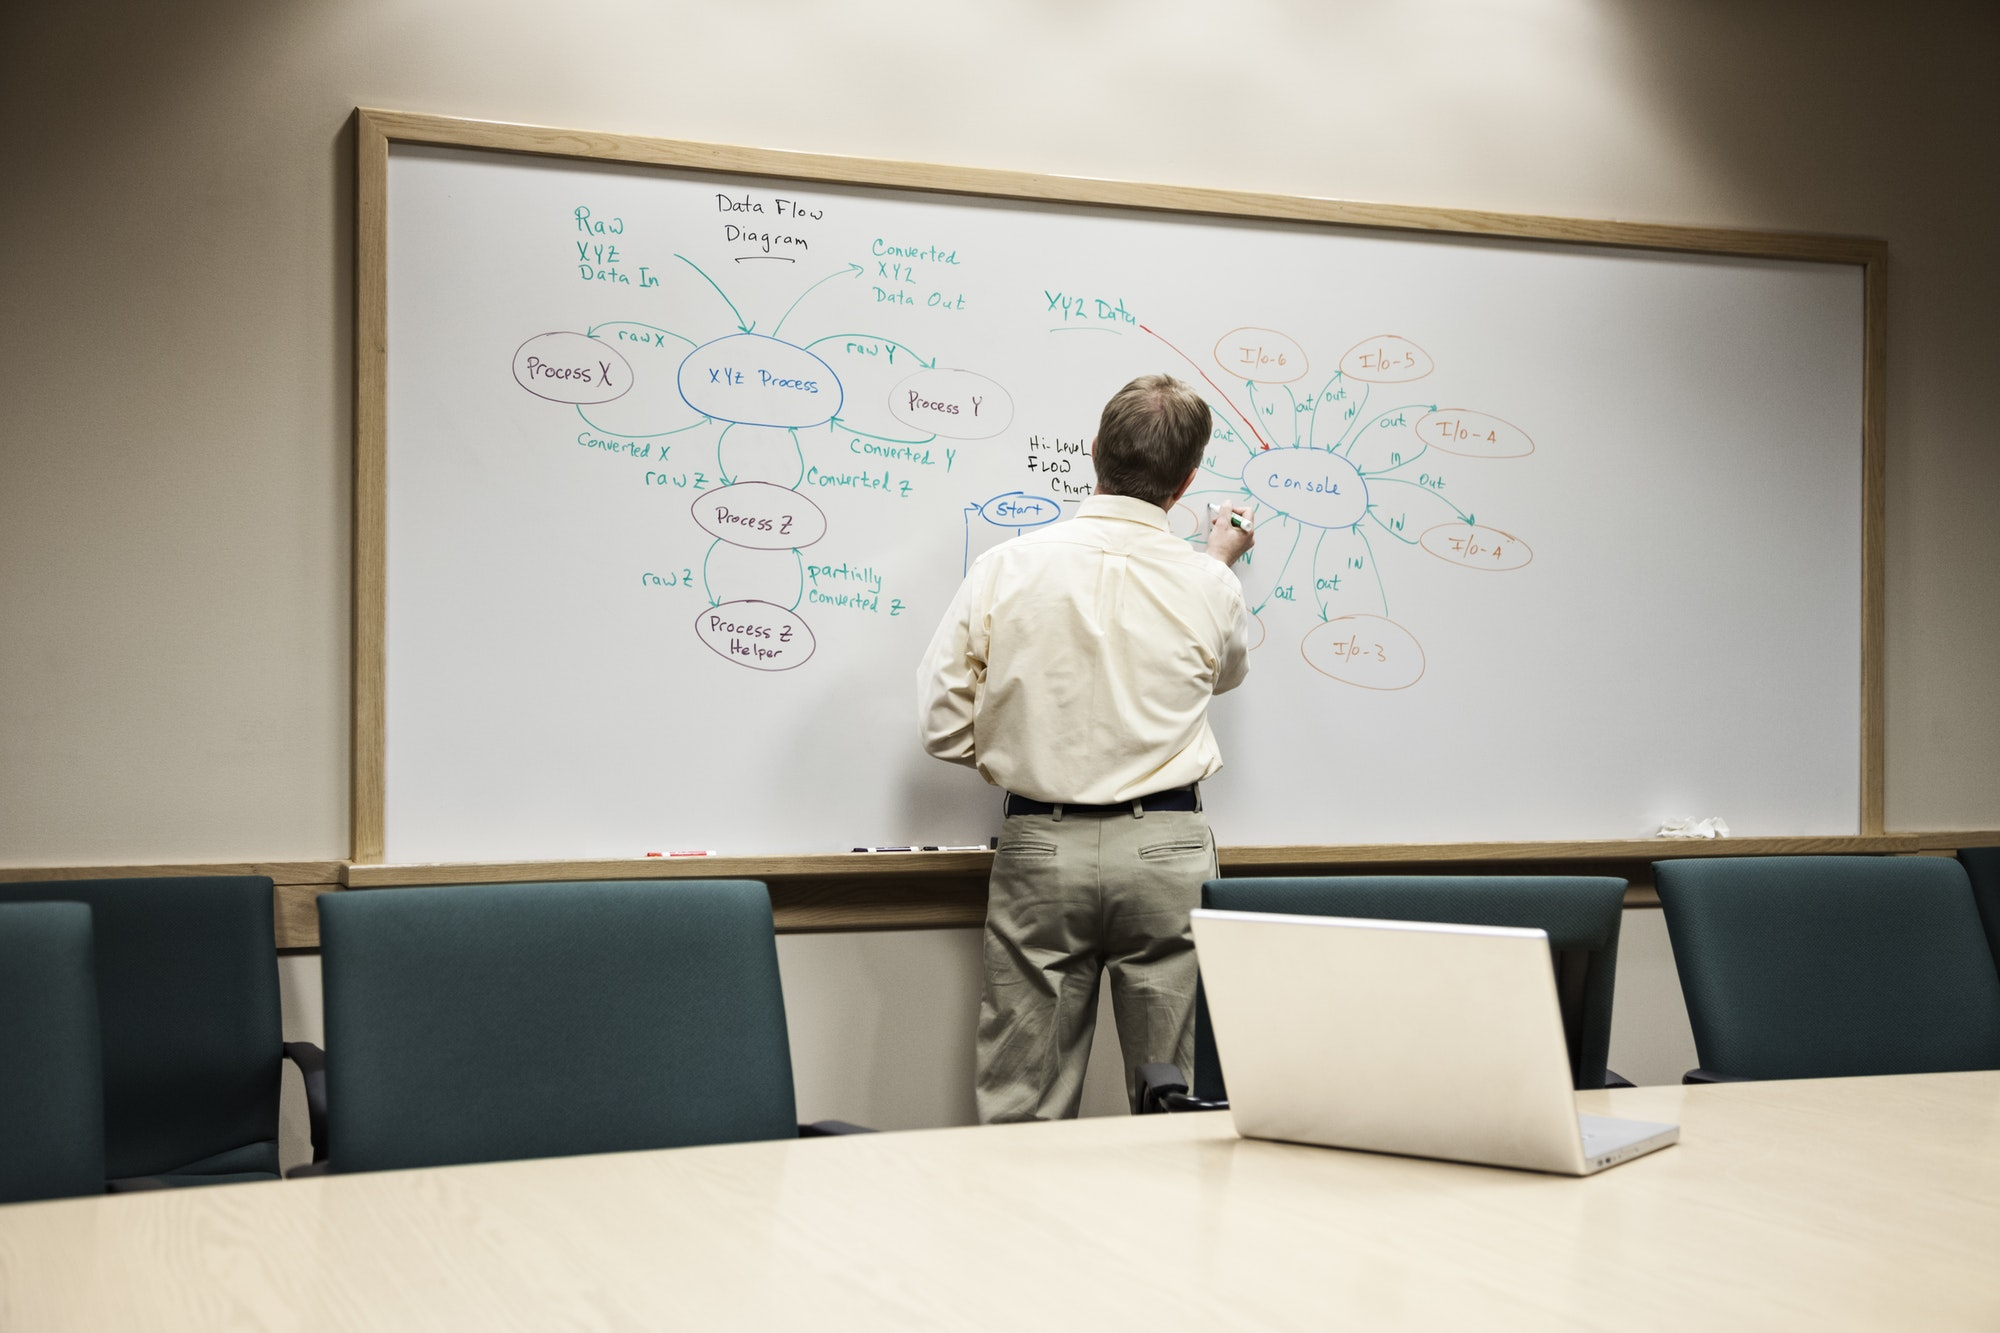 Caucasian man working at a white board in a conference room.